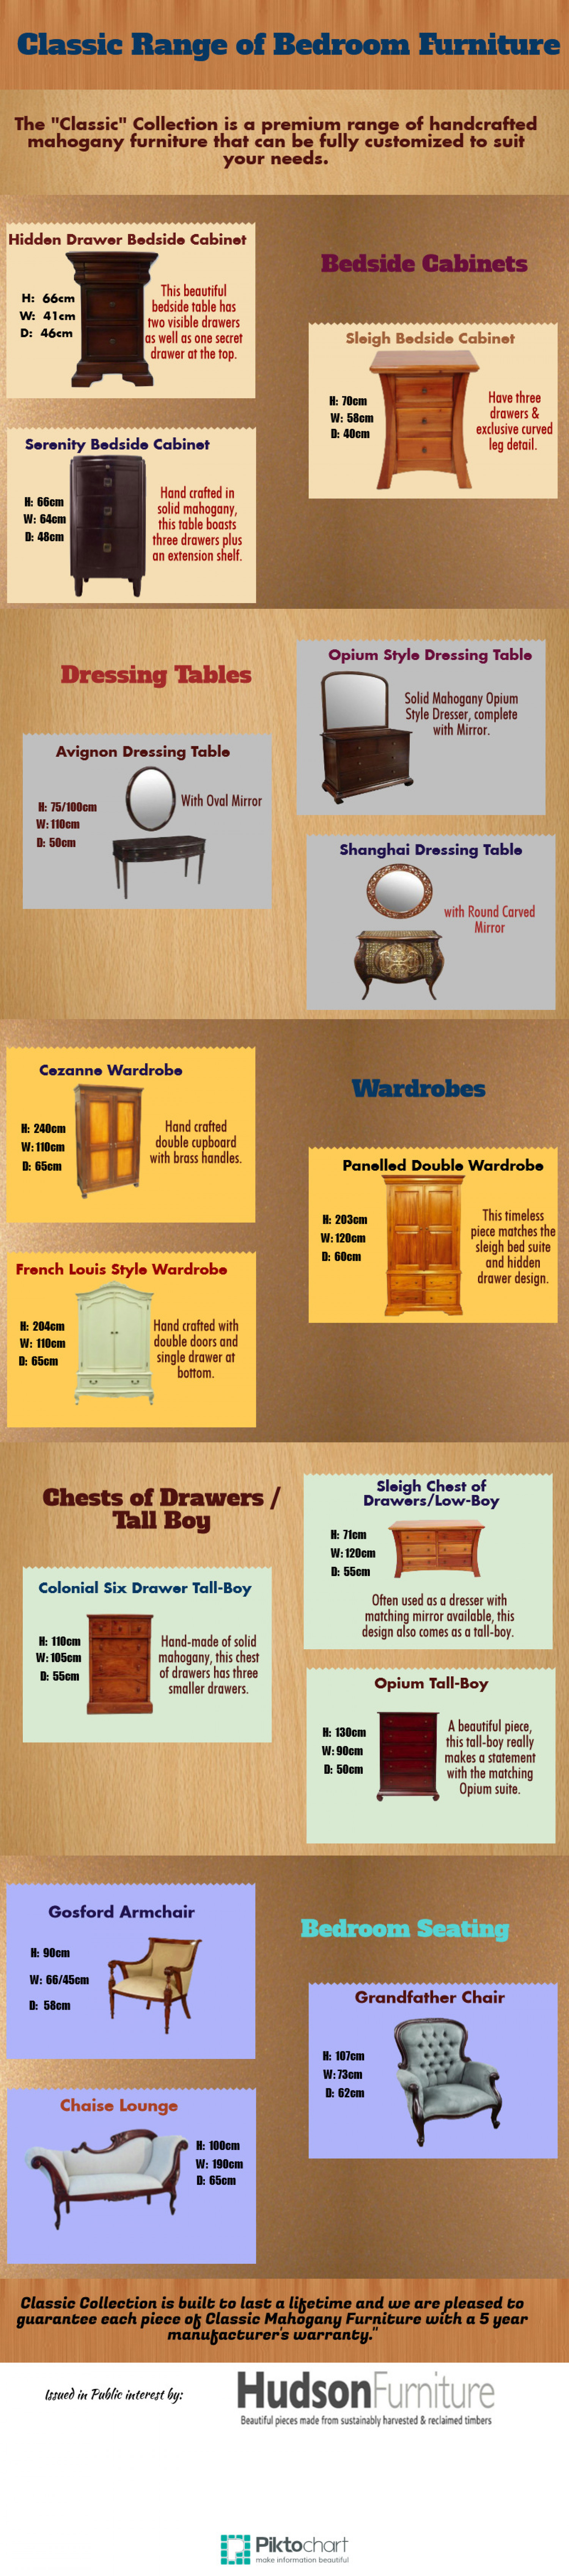 Classic Range of Bedroom Furniture Infographic